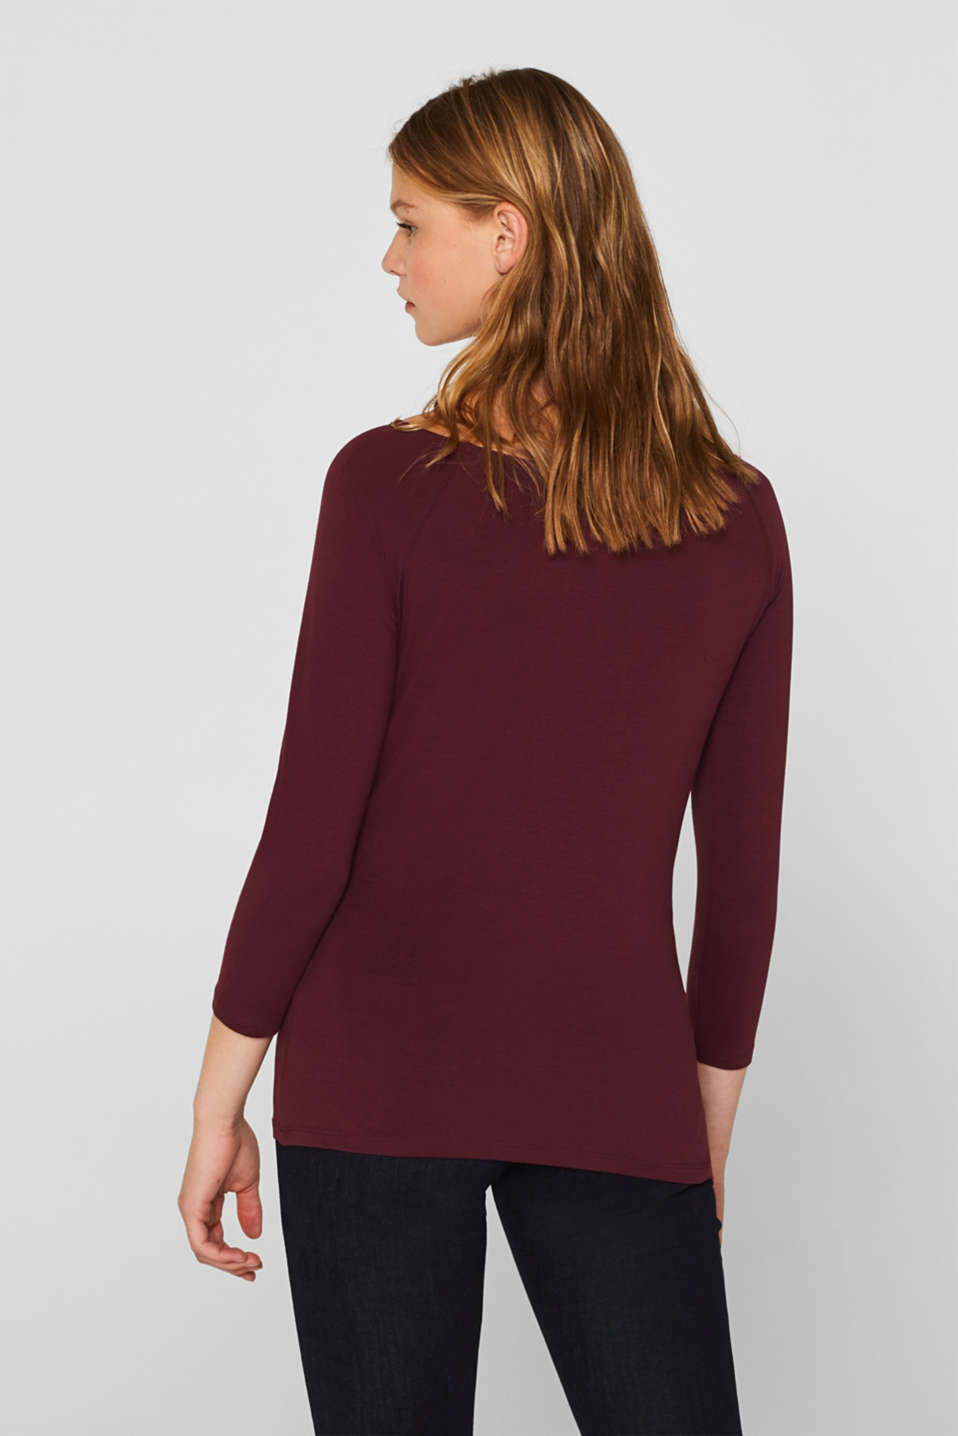 Stretch long sleeve top with organic cotton, BORDEAUX RED 4, detail image number 3